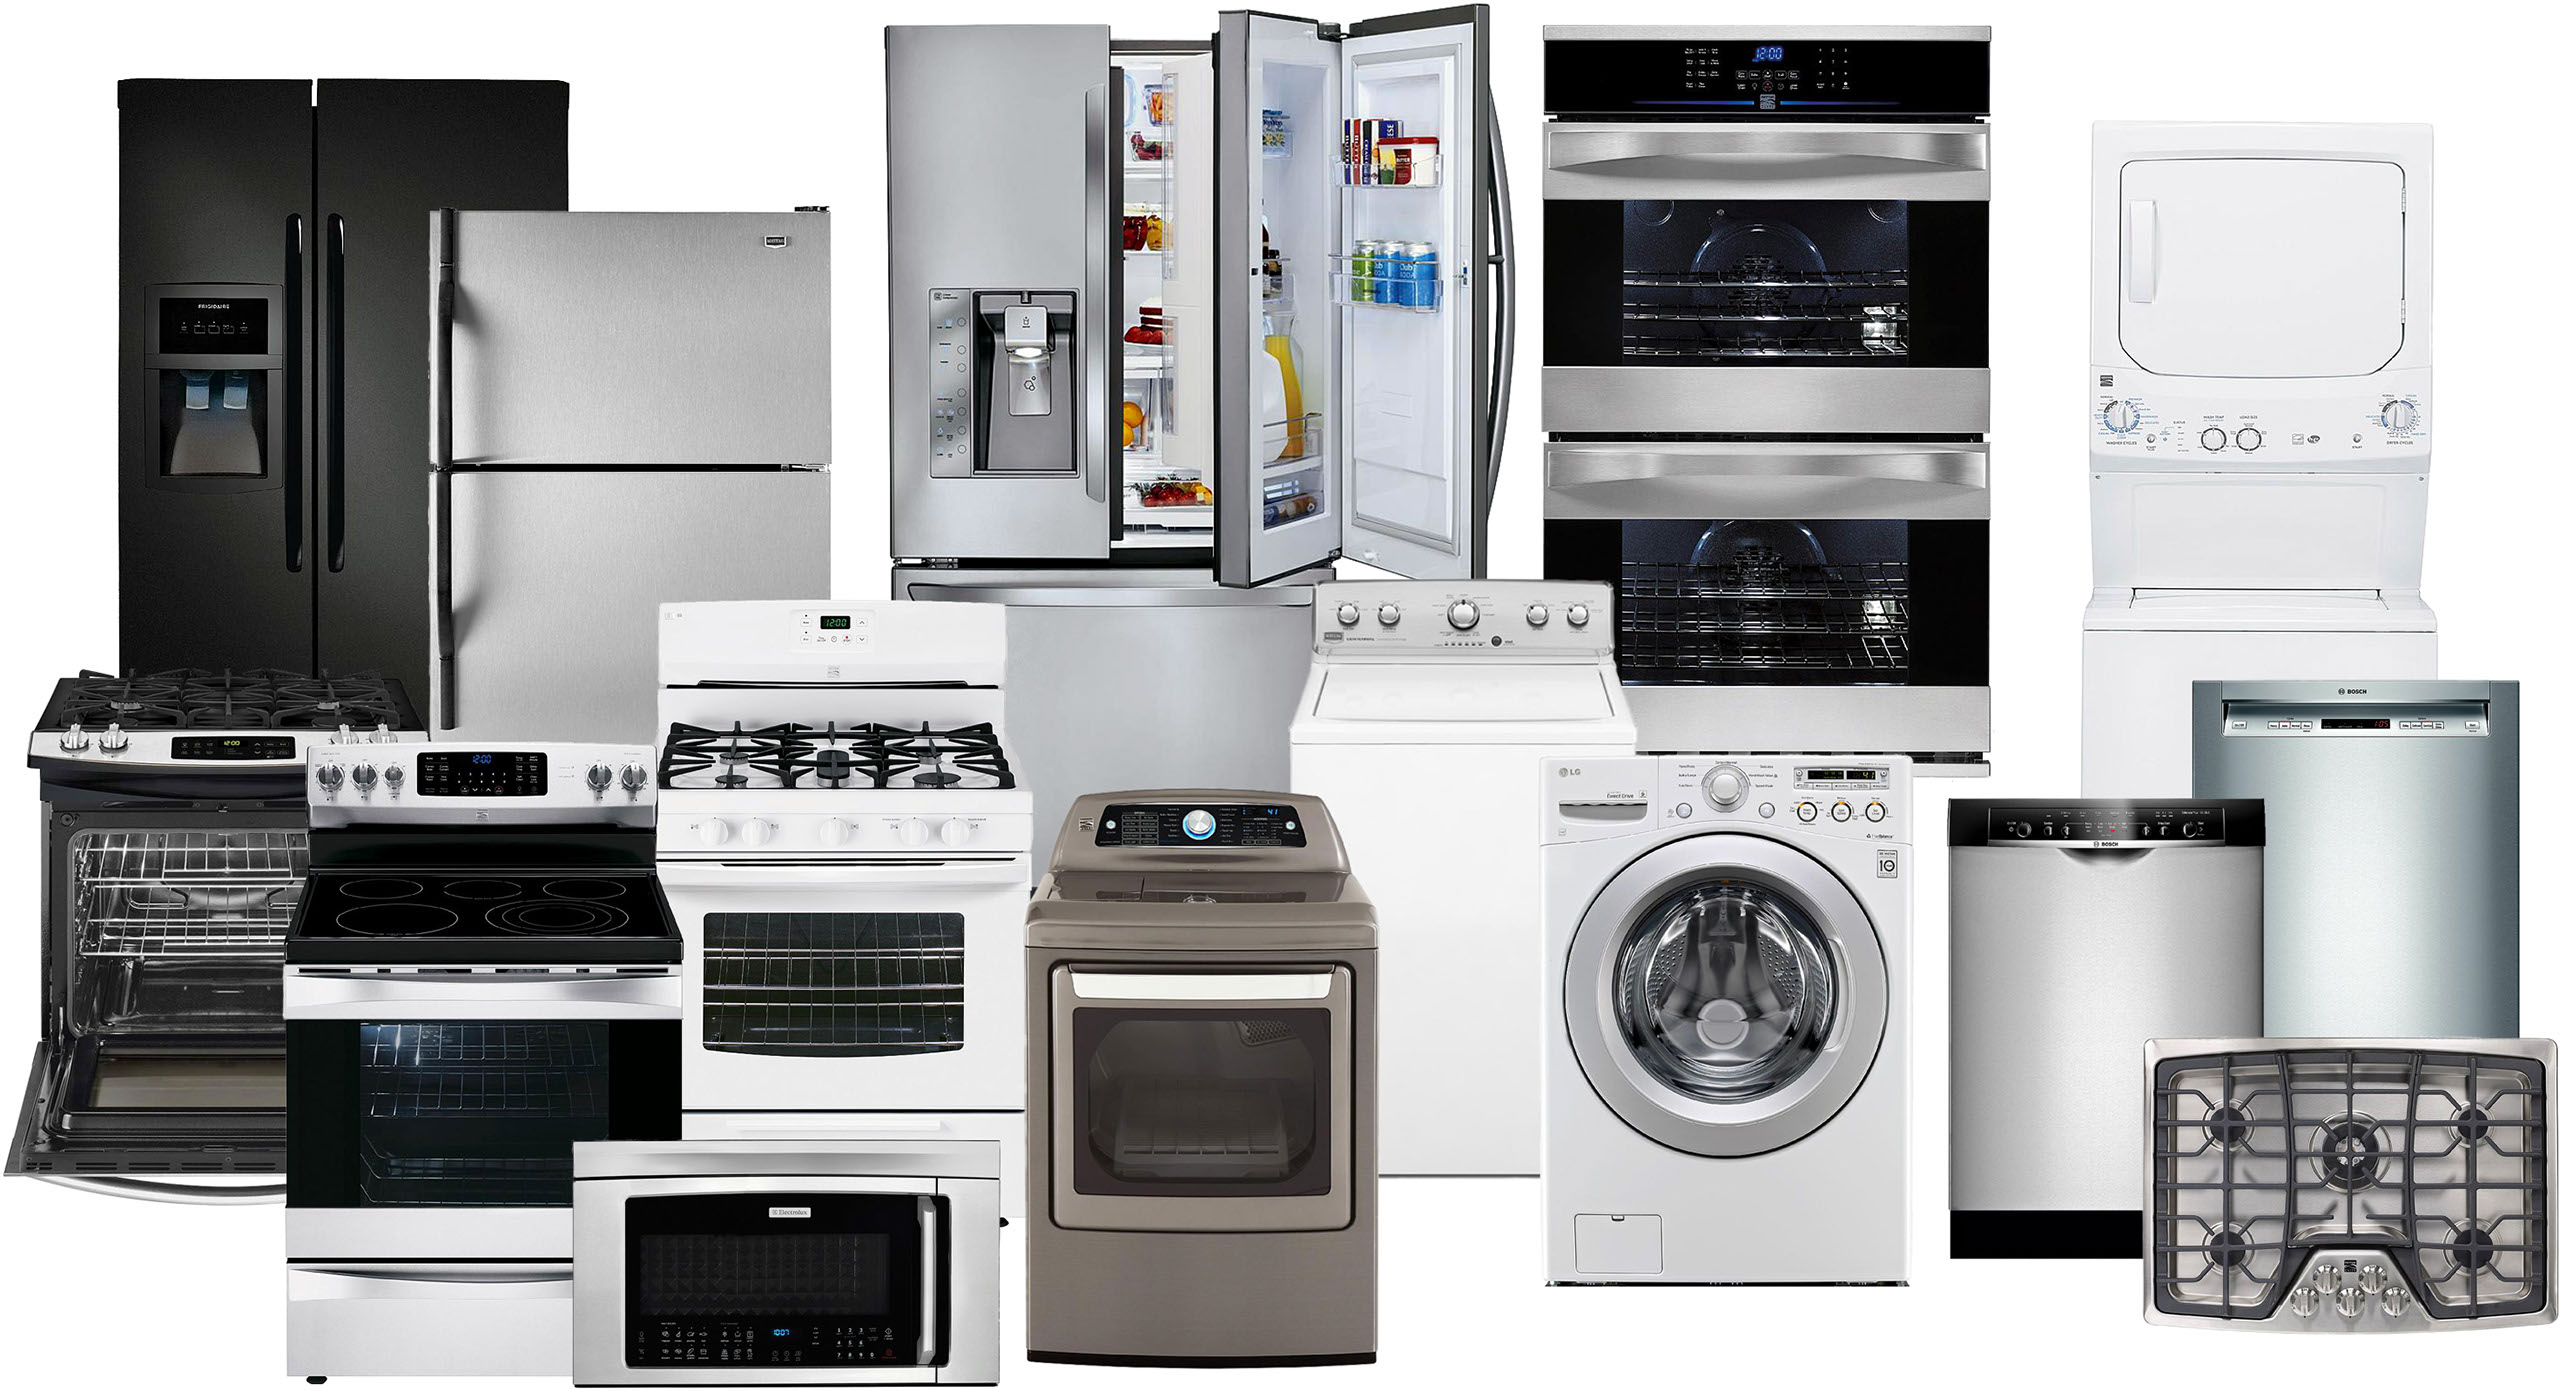 Pictures of appliances at home.